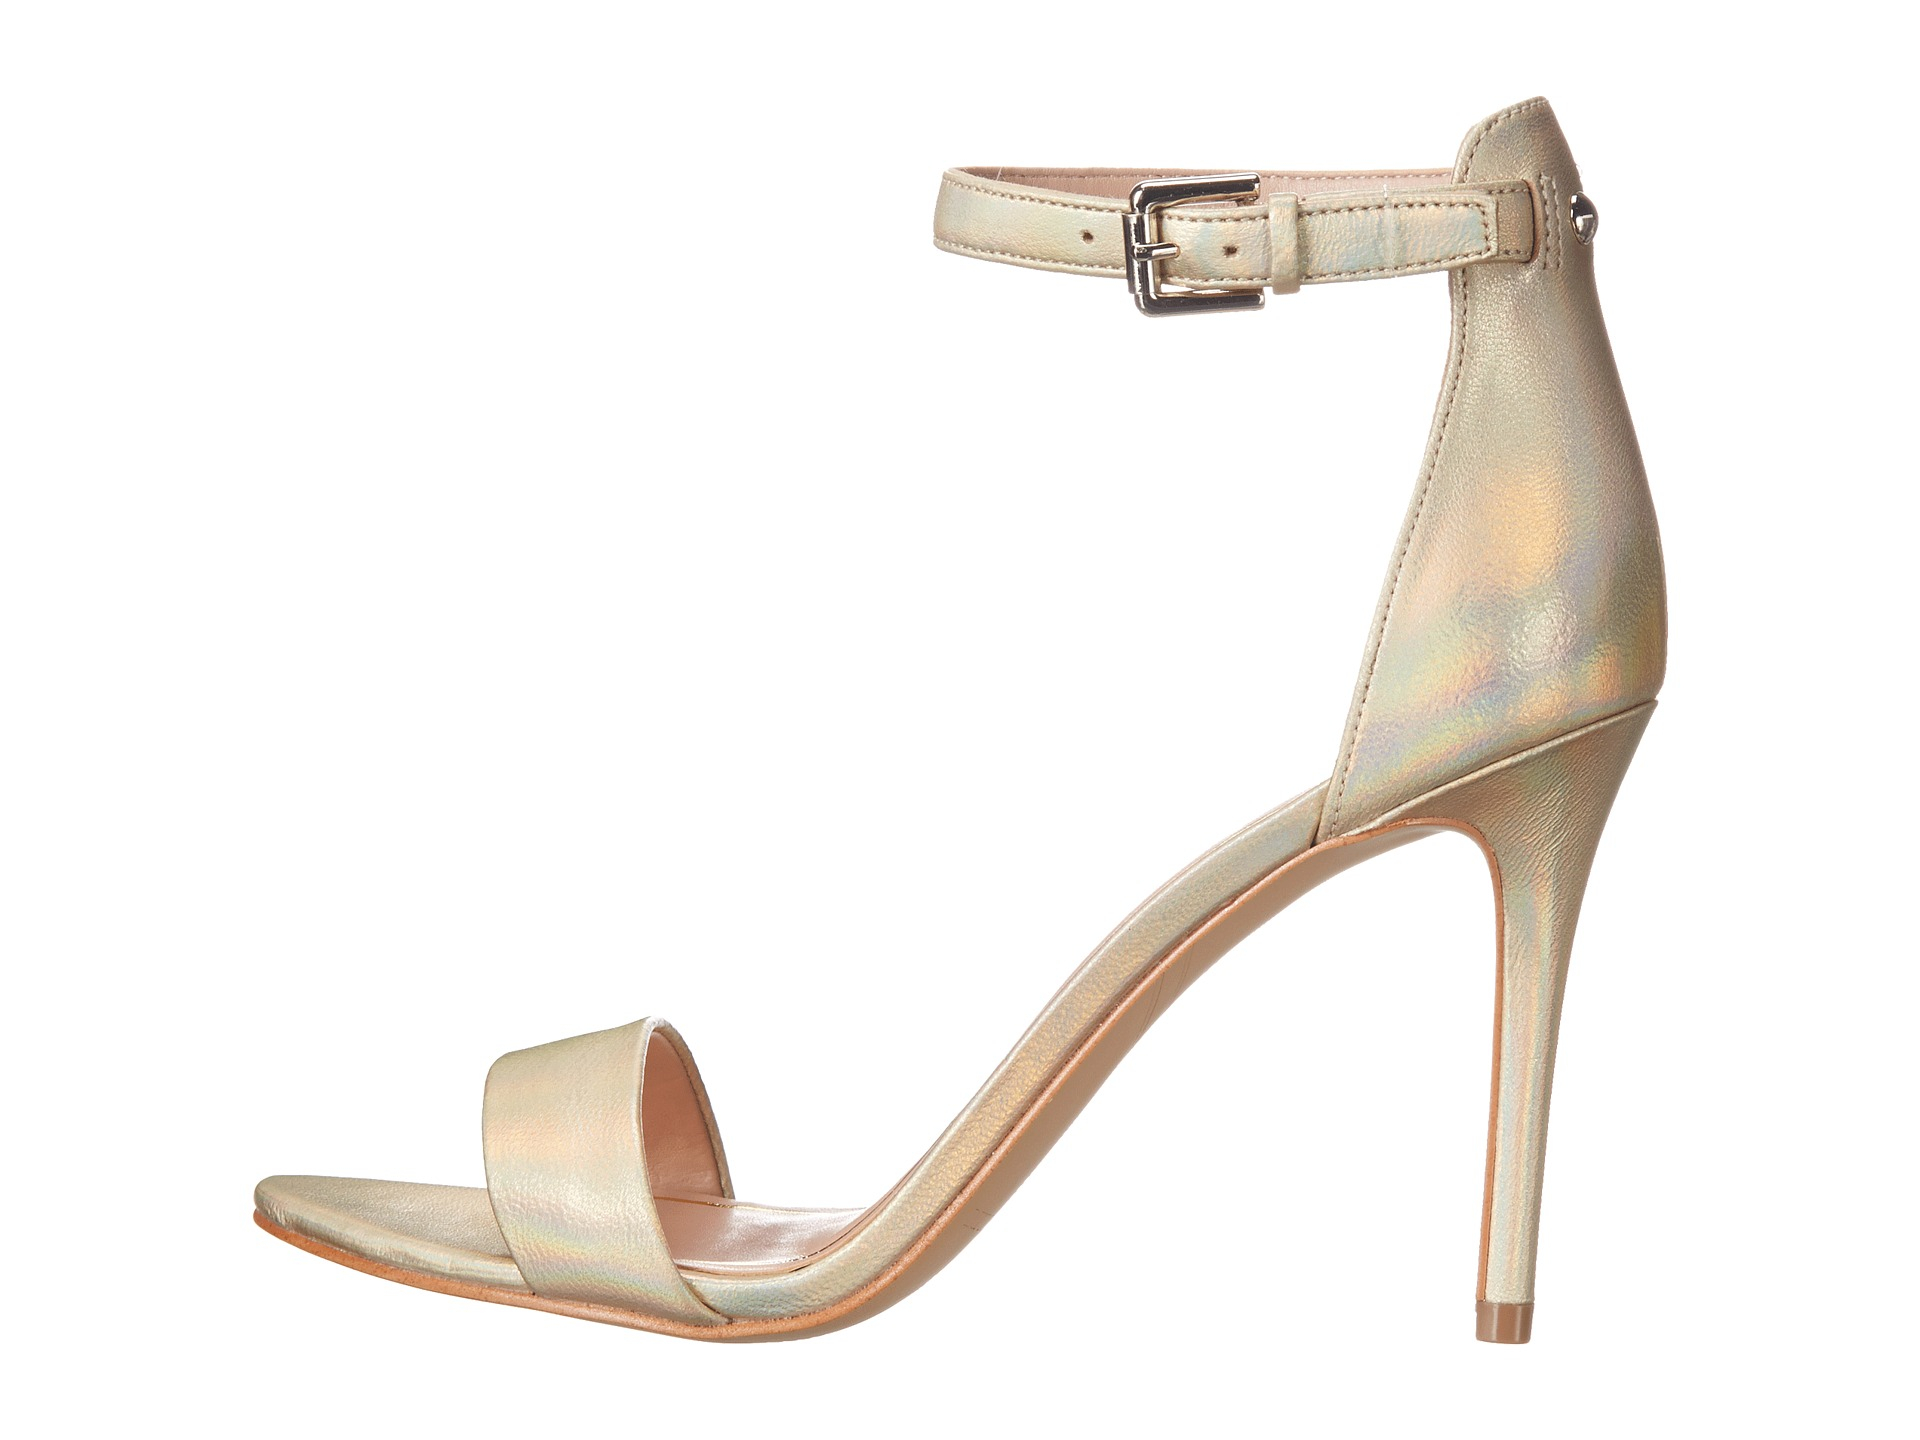 Lyst - Enzo Angiolini Manna in Metallic e1580a47a